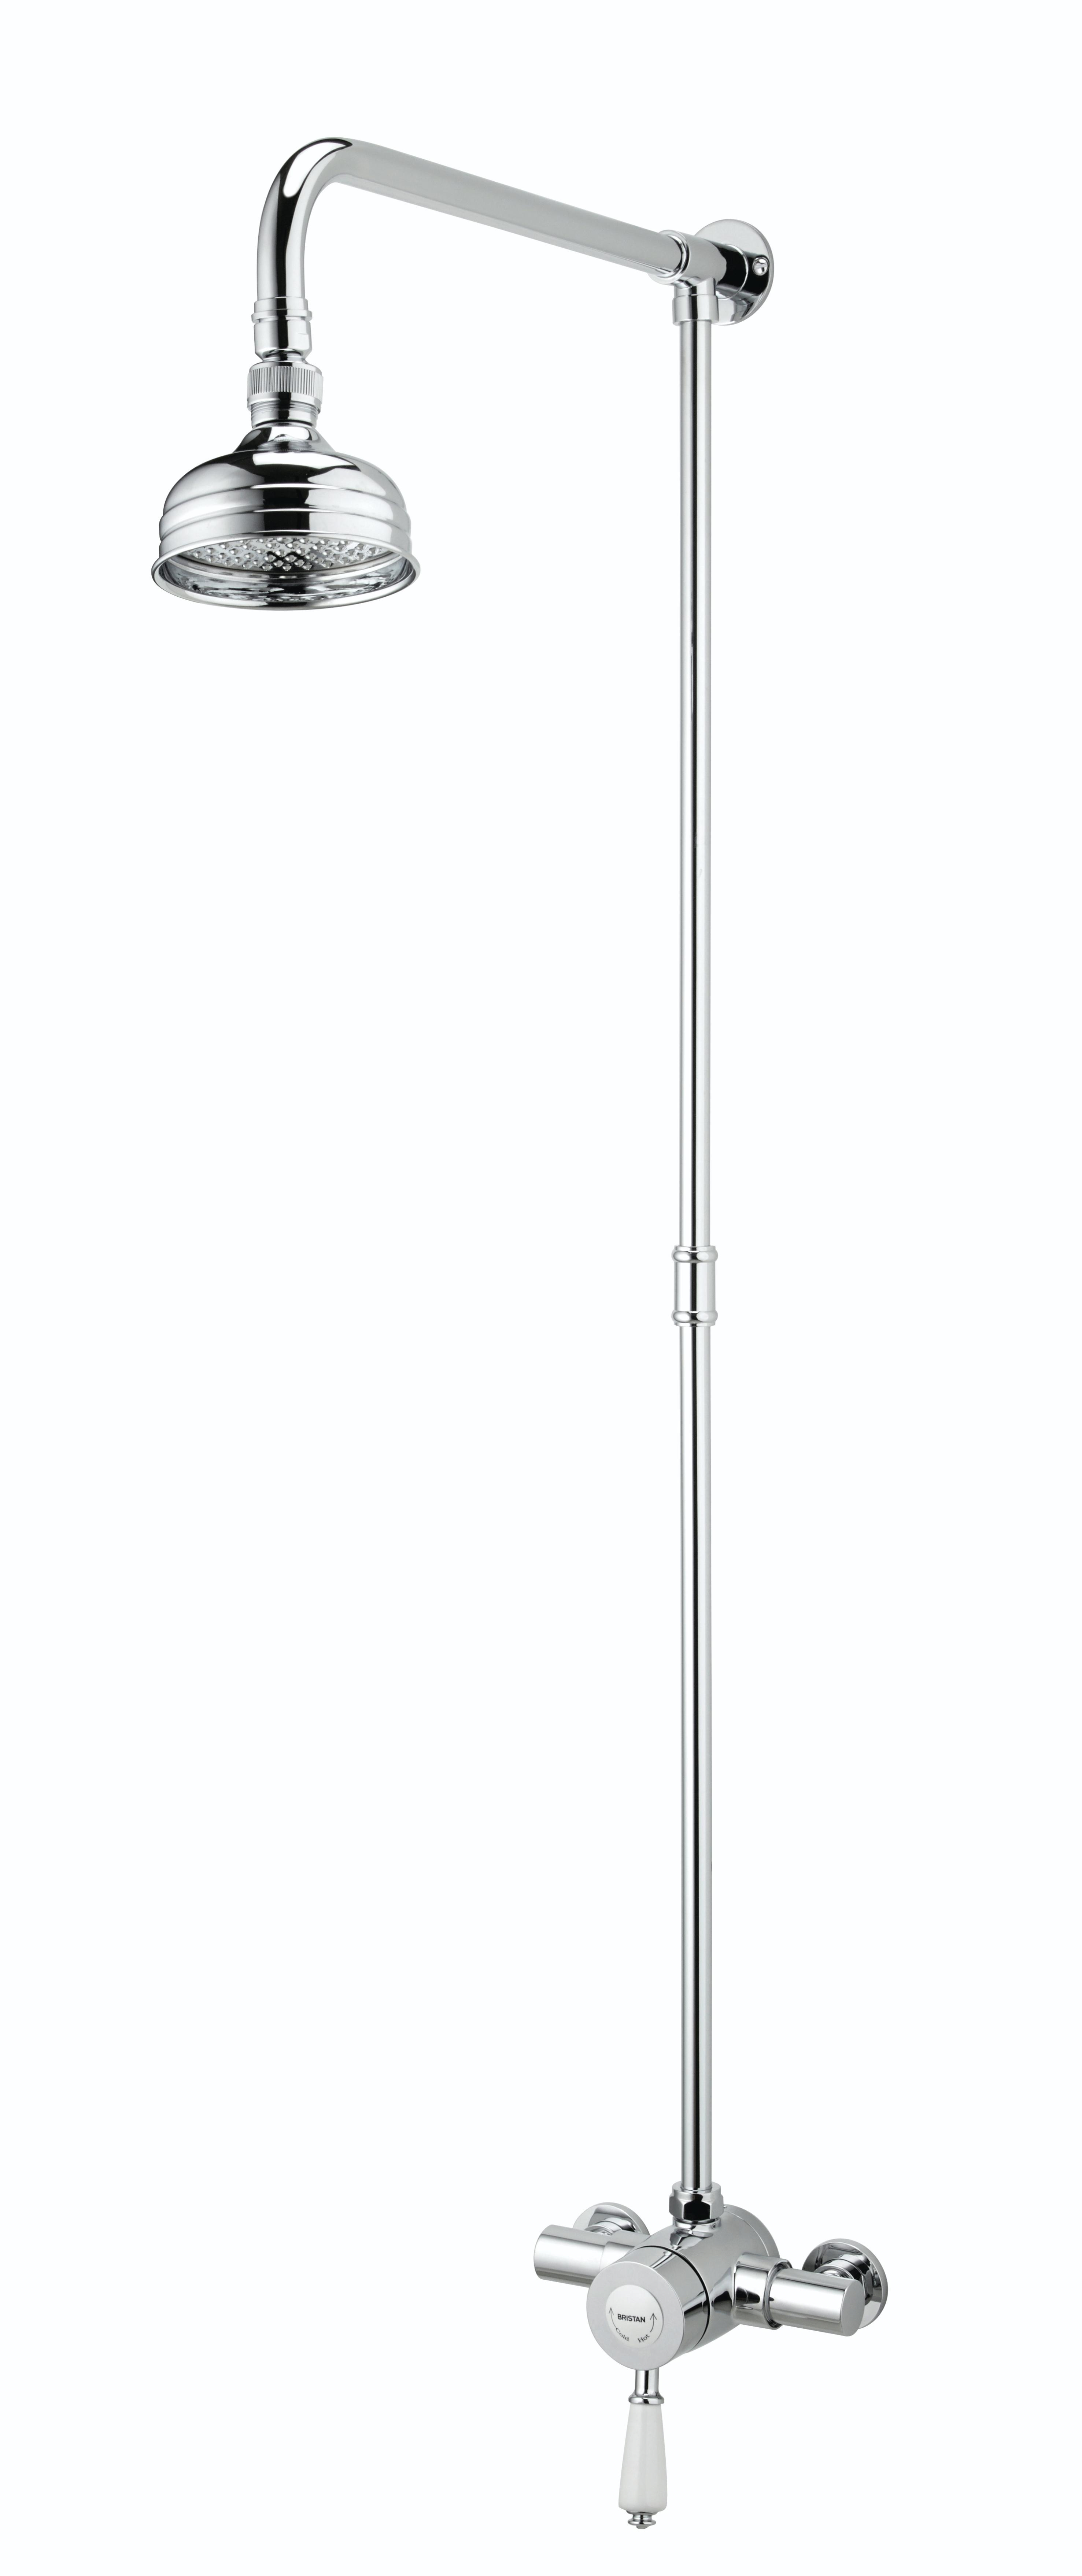 BRISTAN COLONIAL EXPOSED THERMOSTATIC SHOWER VALVE WITH RIGID RISER - KN2 SHXRR C